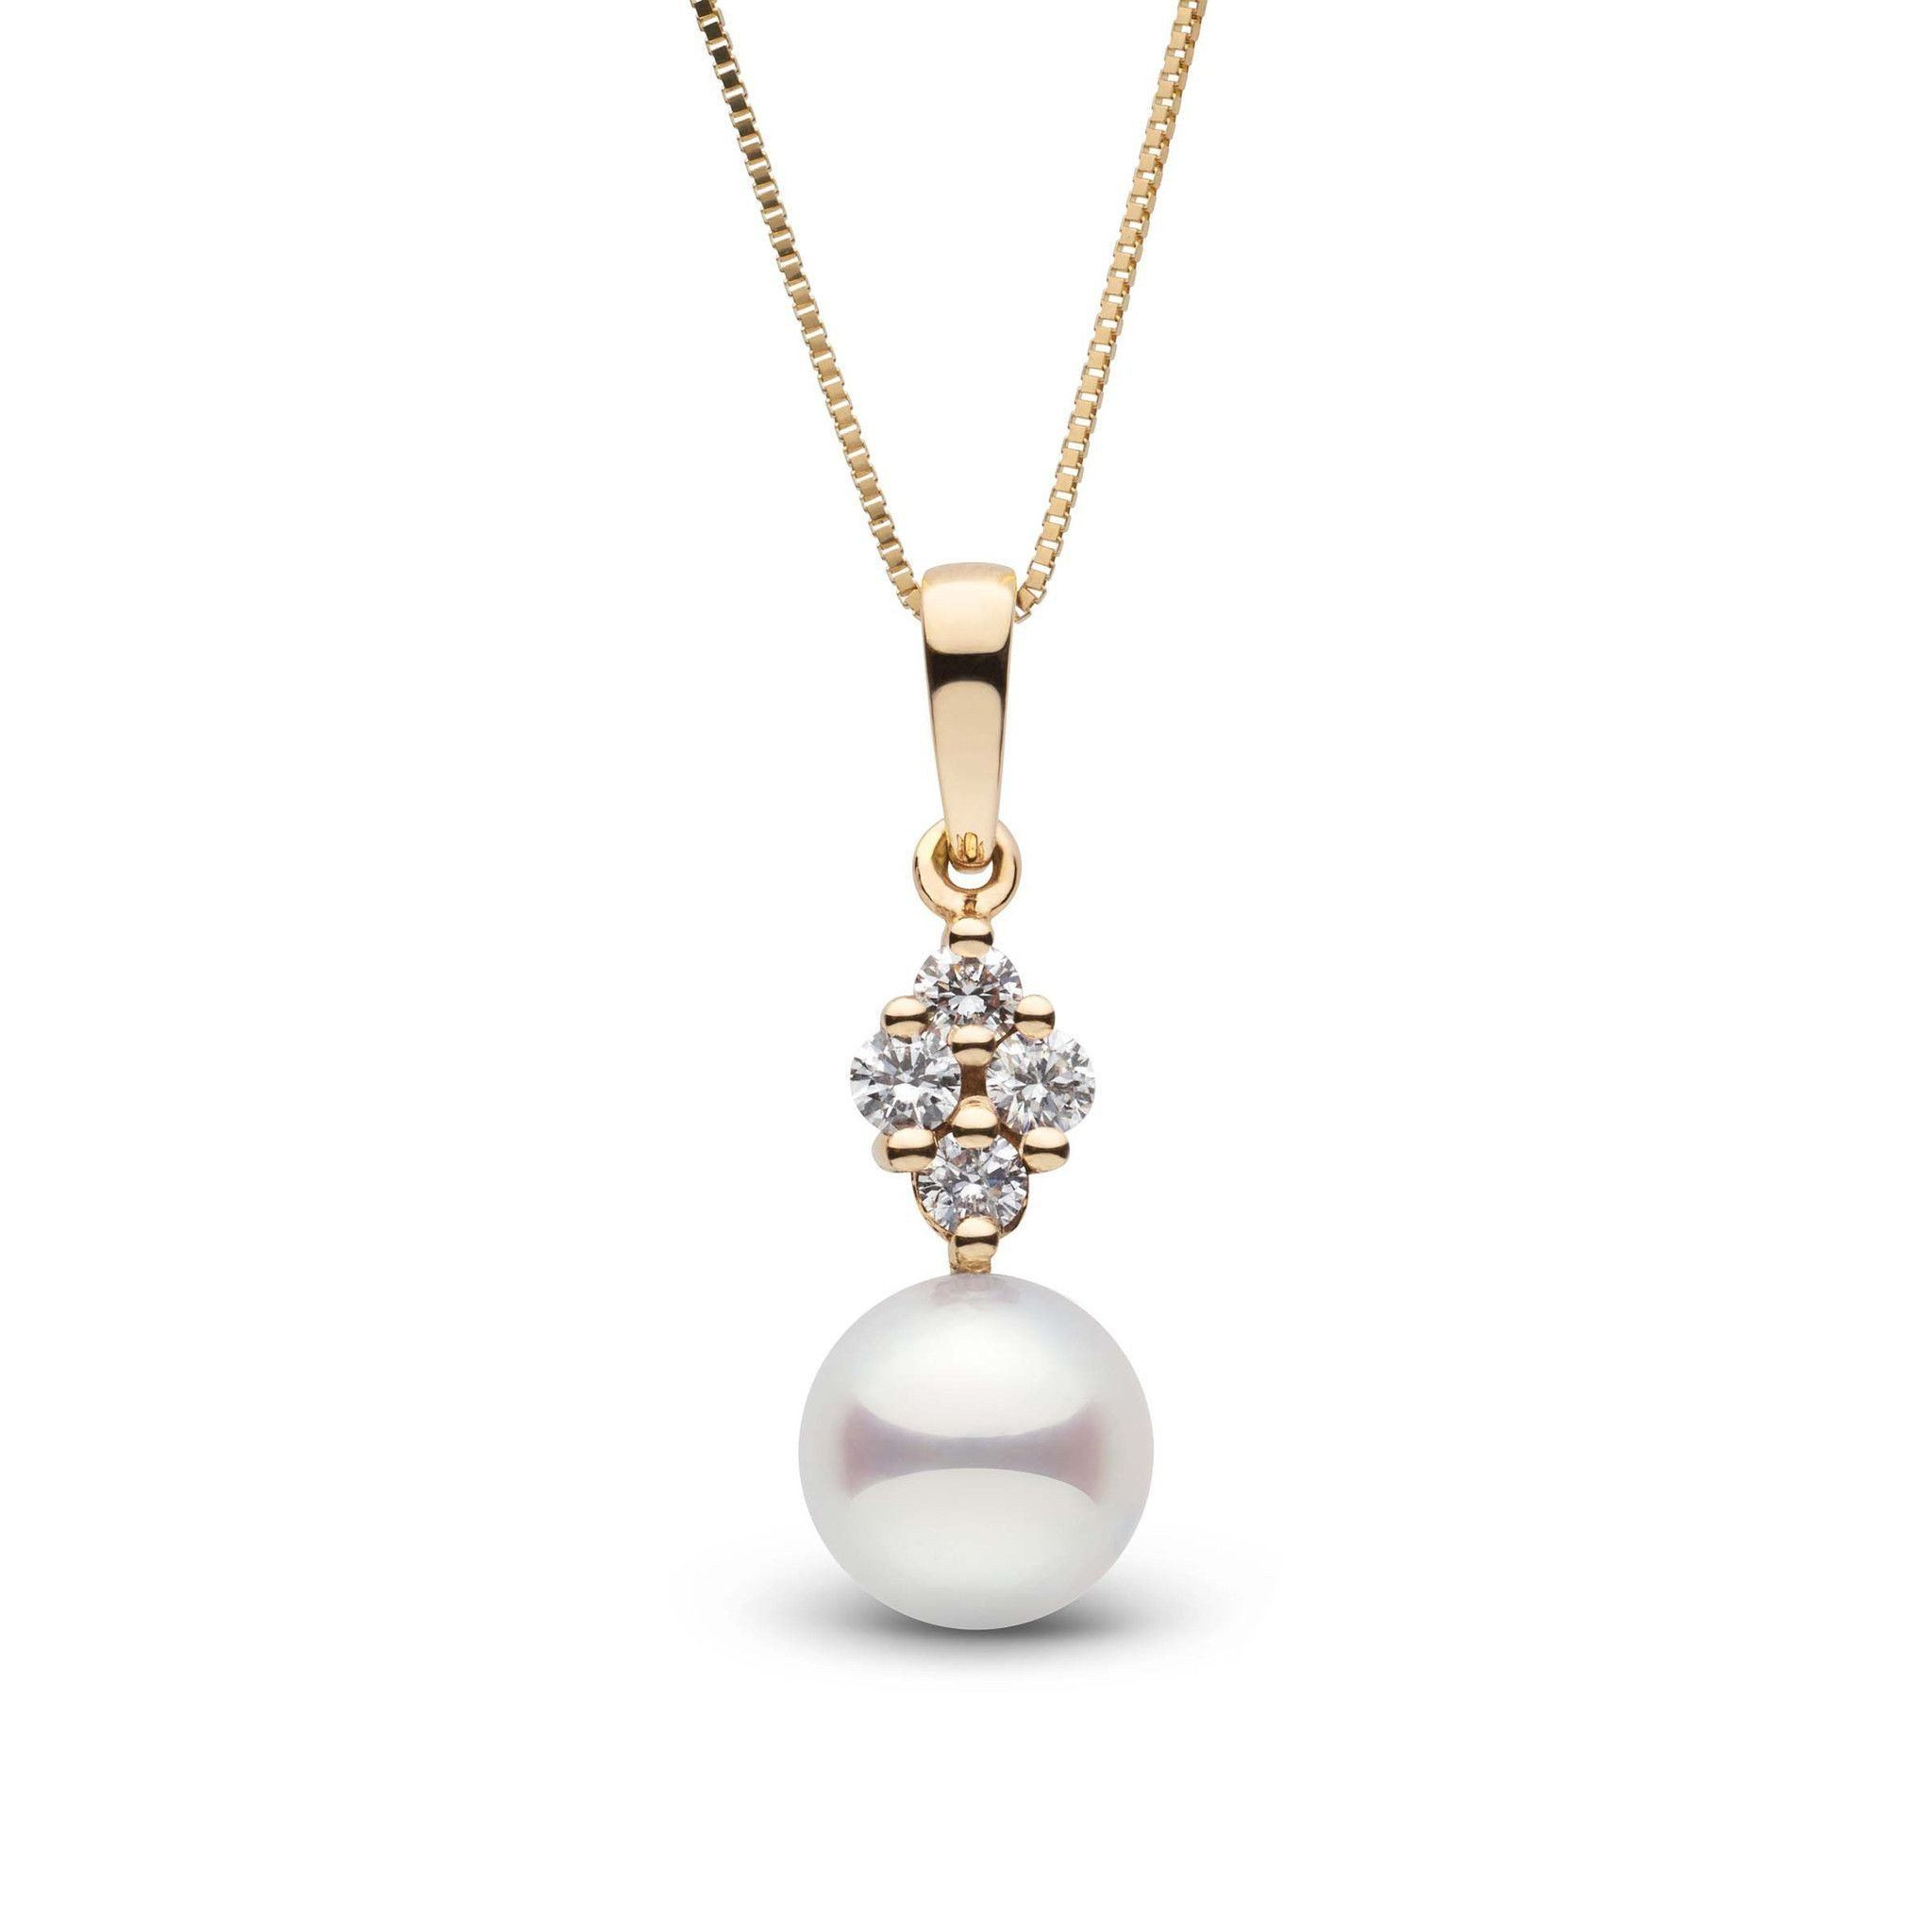 Elegance Collection 8.0-8.5 mm Akoya Pearl and Diamond Pendant